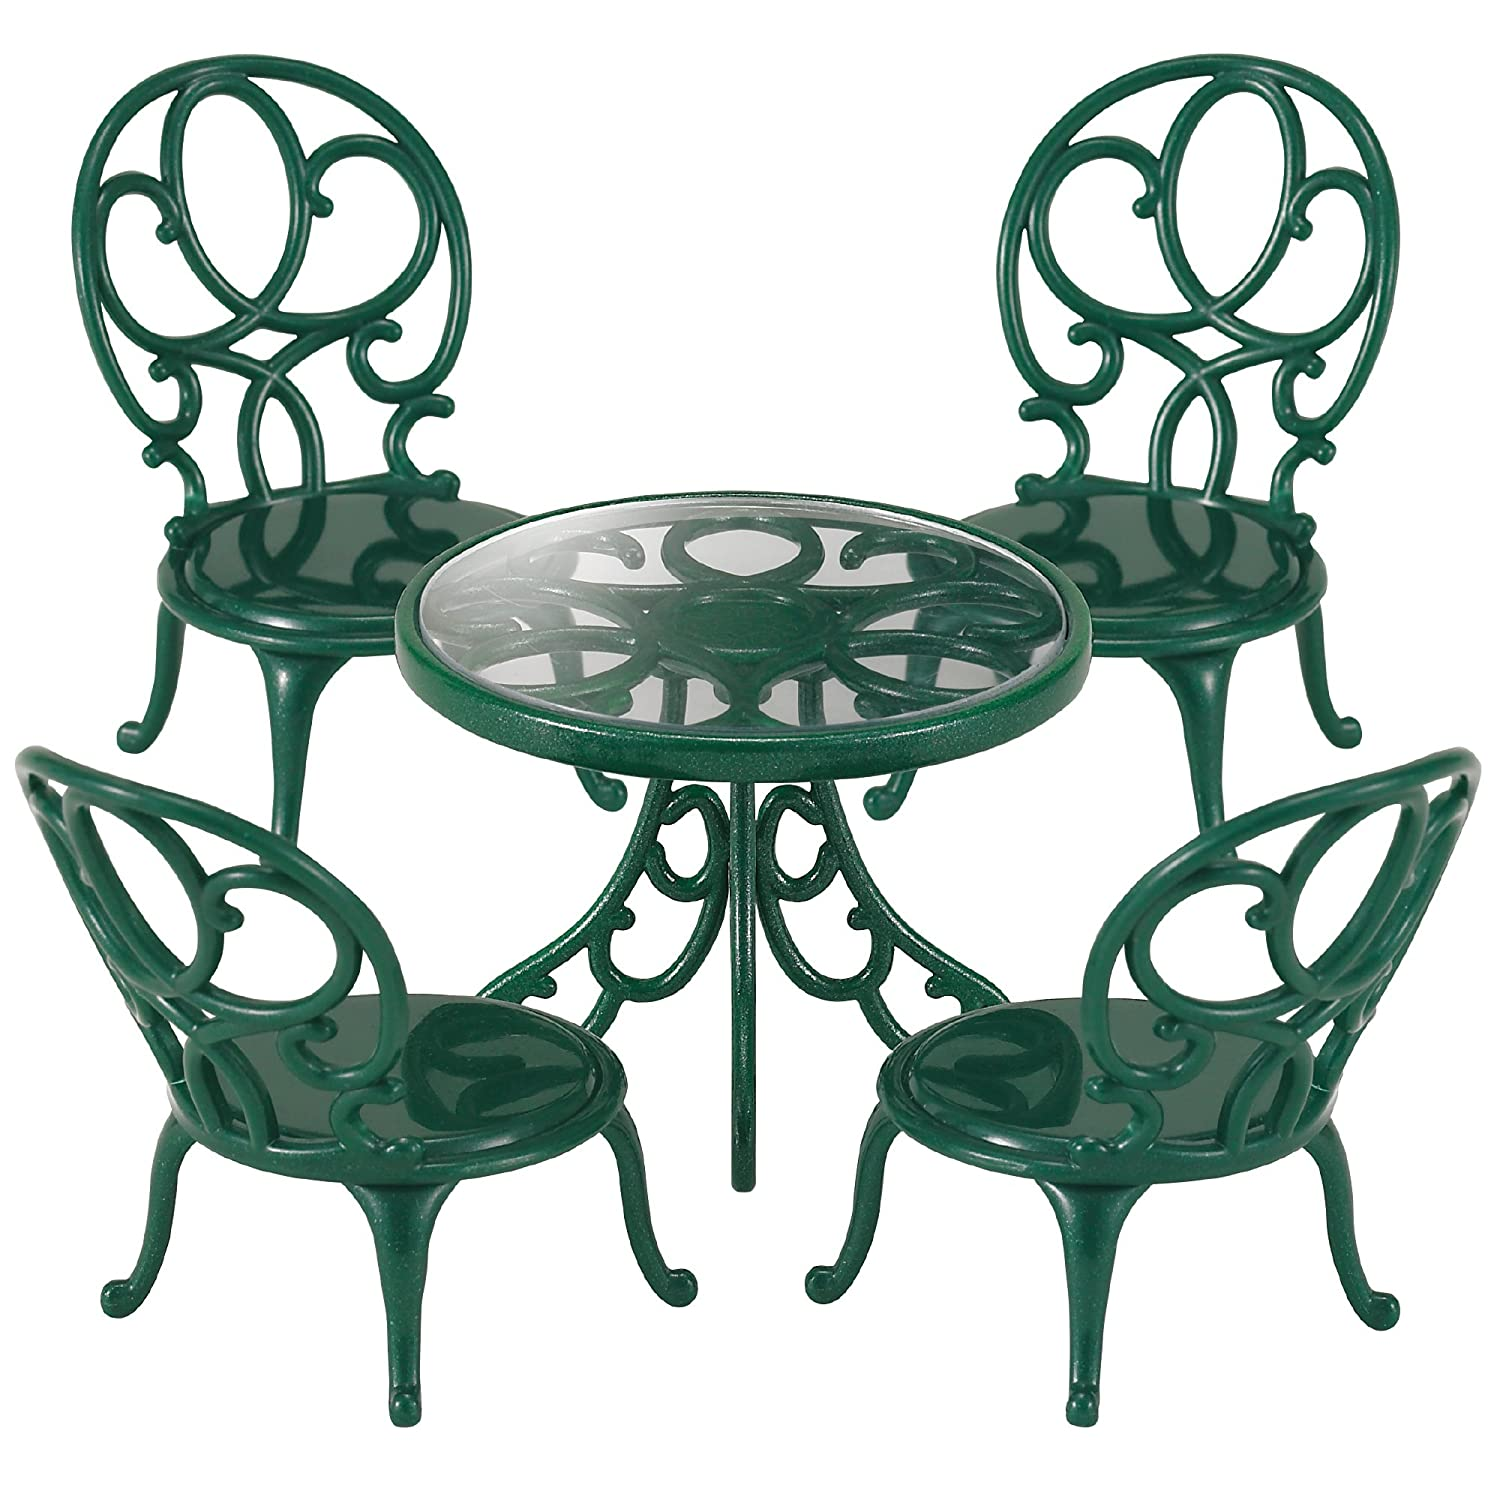 Sylvanian Families Ornate Garden Table and Chairs Amazon